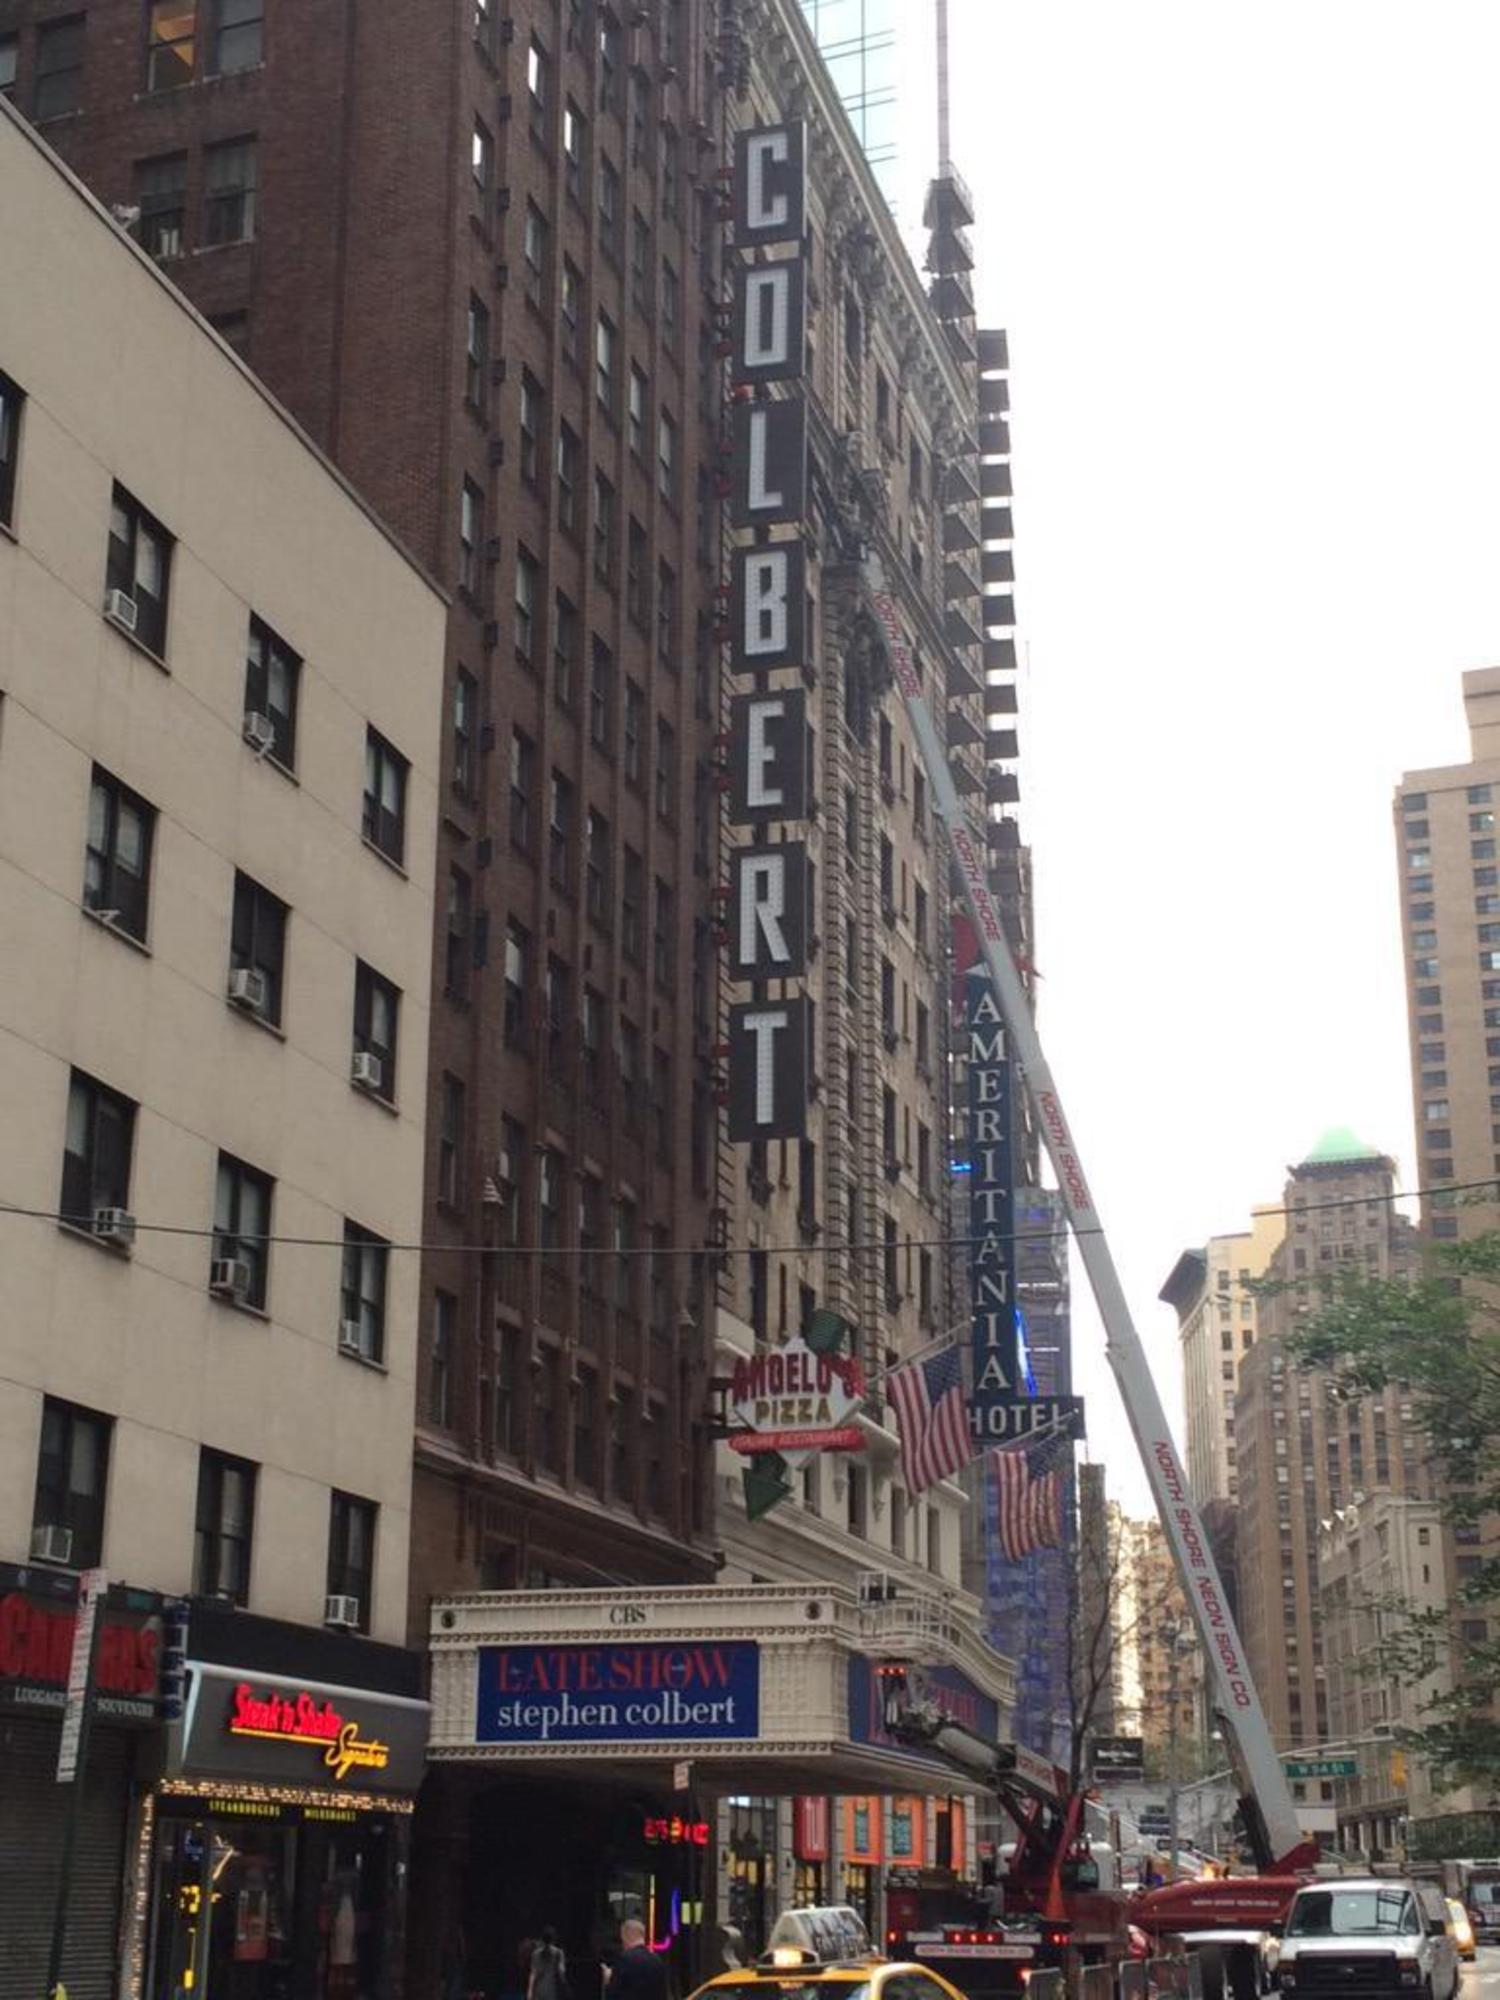 Sign guys at Ed Sullivan Theater currently affixing giant neon COLBERT letters to the building http://t.co/0MuOqn2rVl